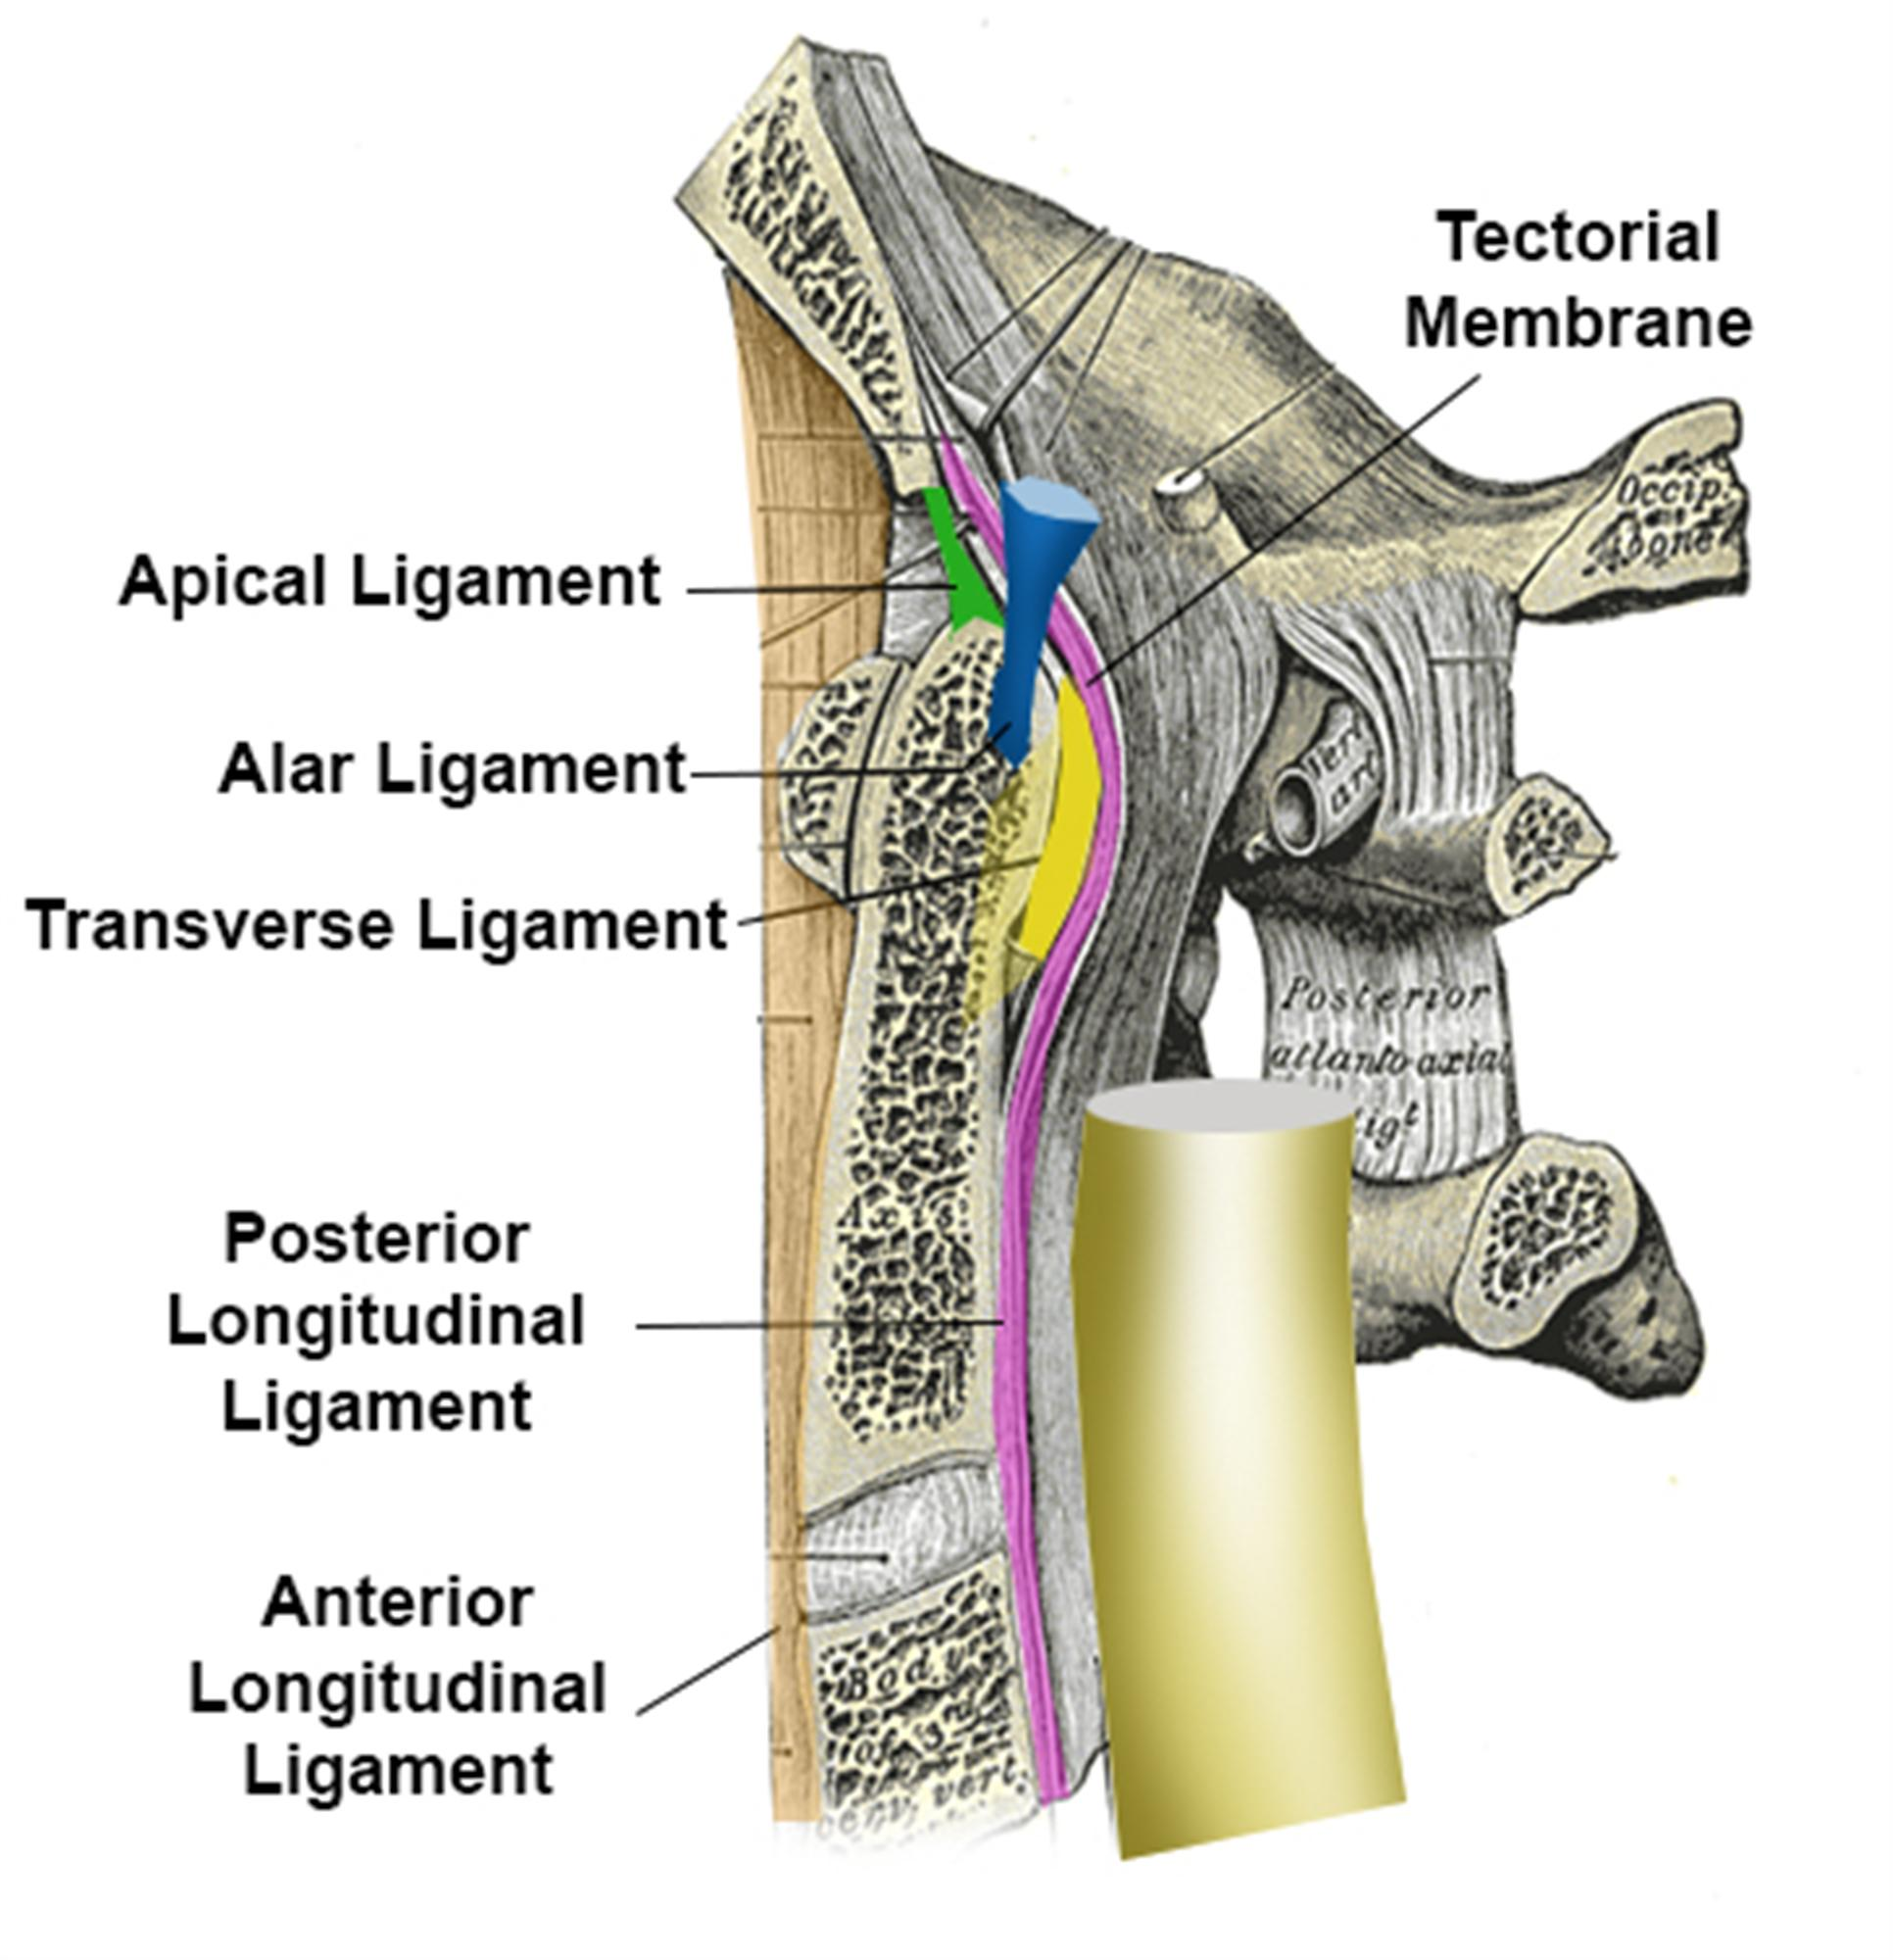 Apical ligament